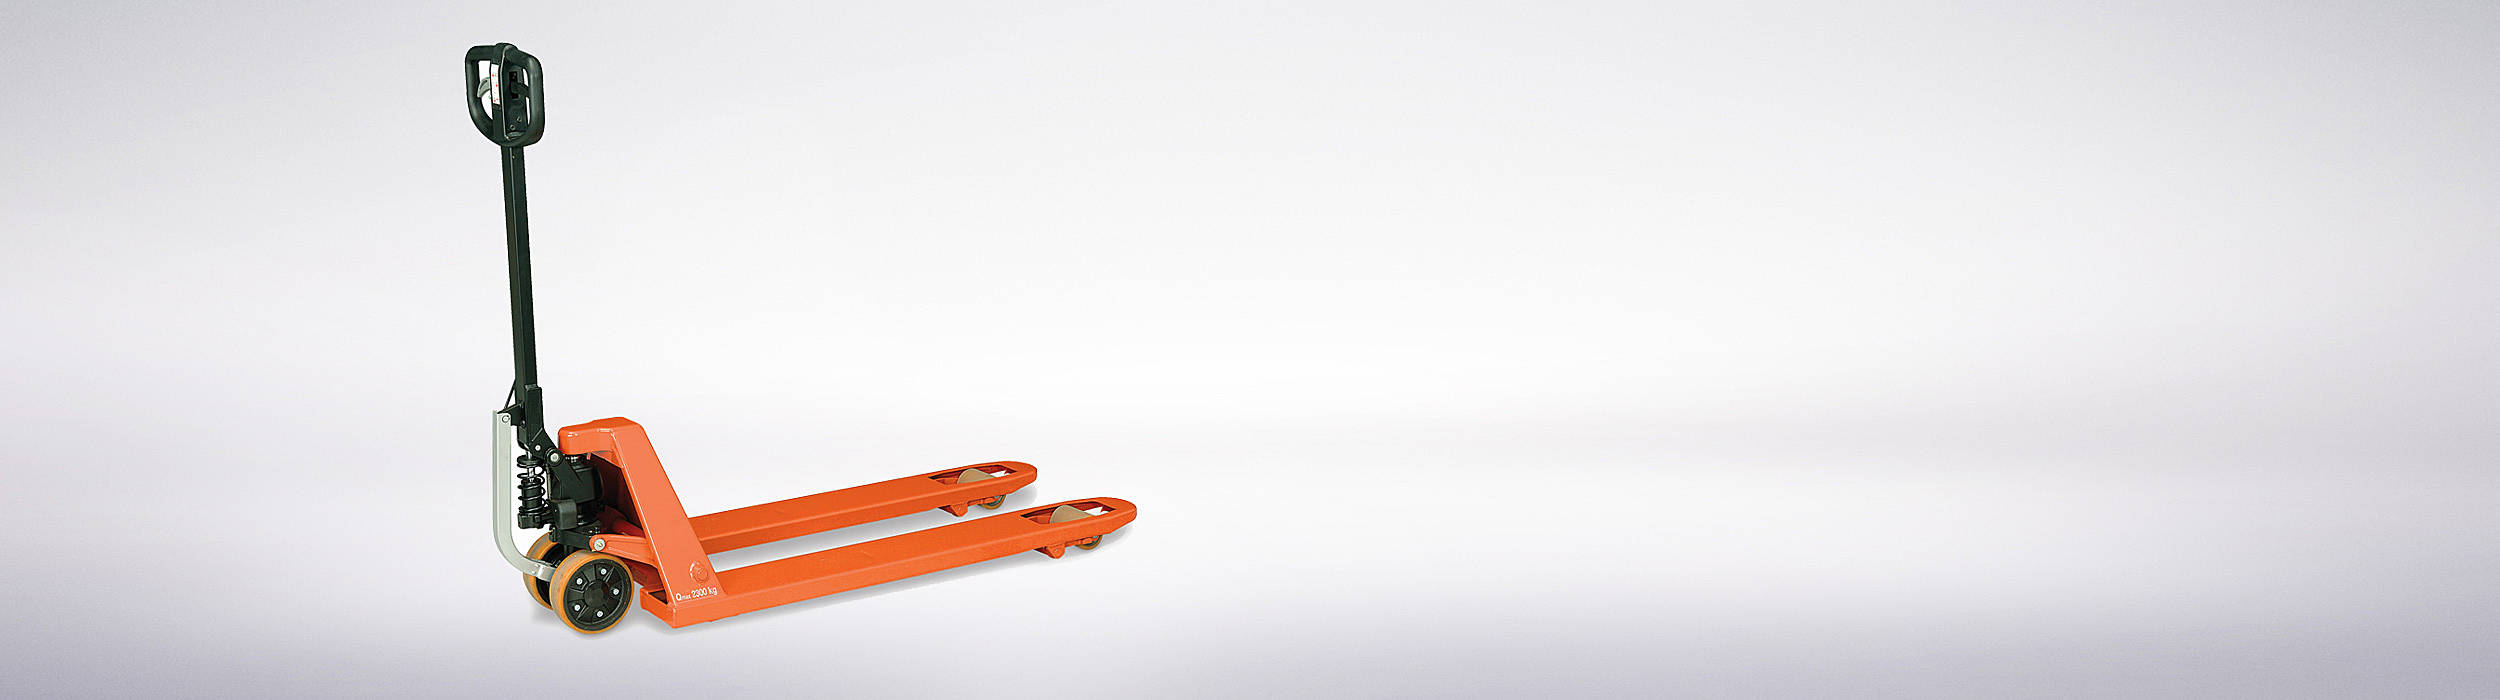 Our BT Pro Lifter hand pallet truck reduces manual handling effort by up to 67%